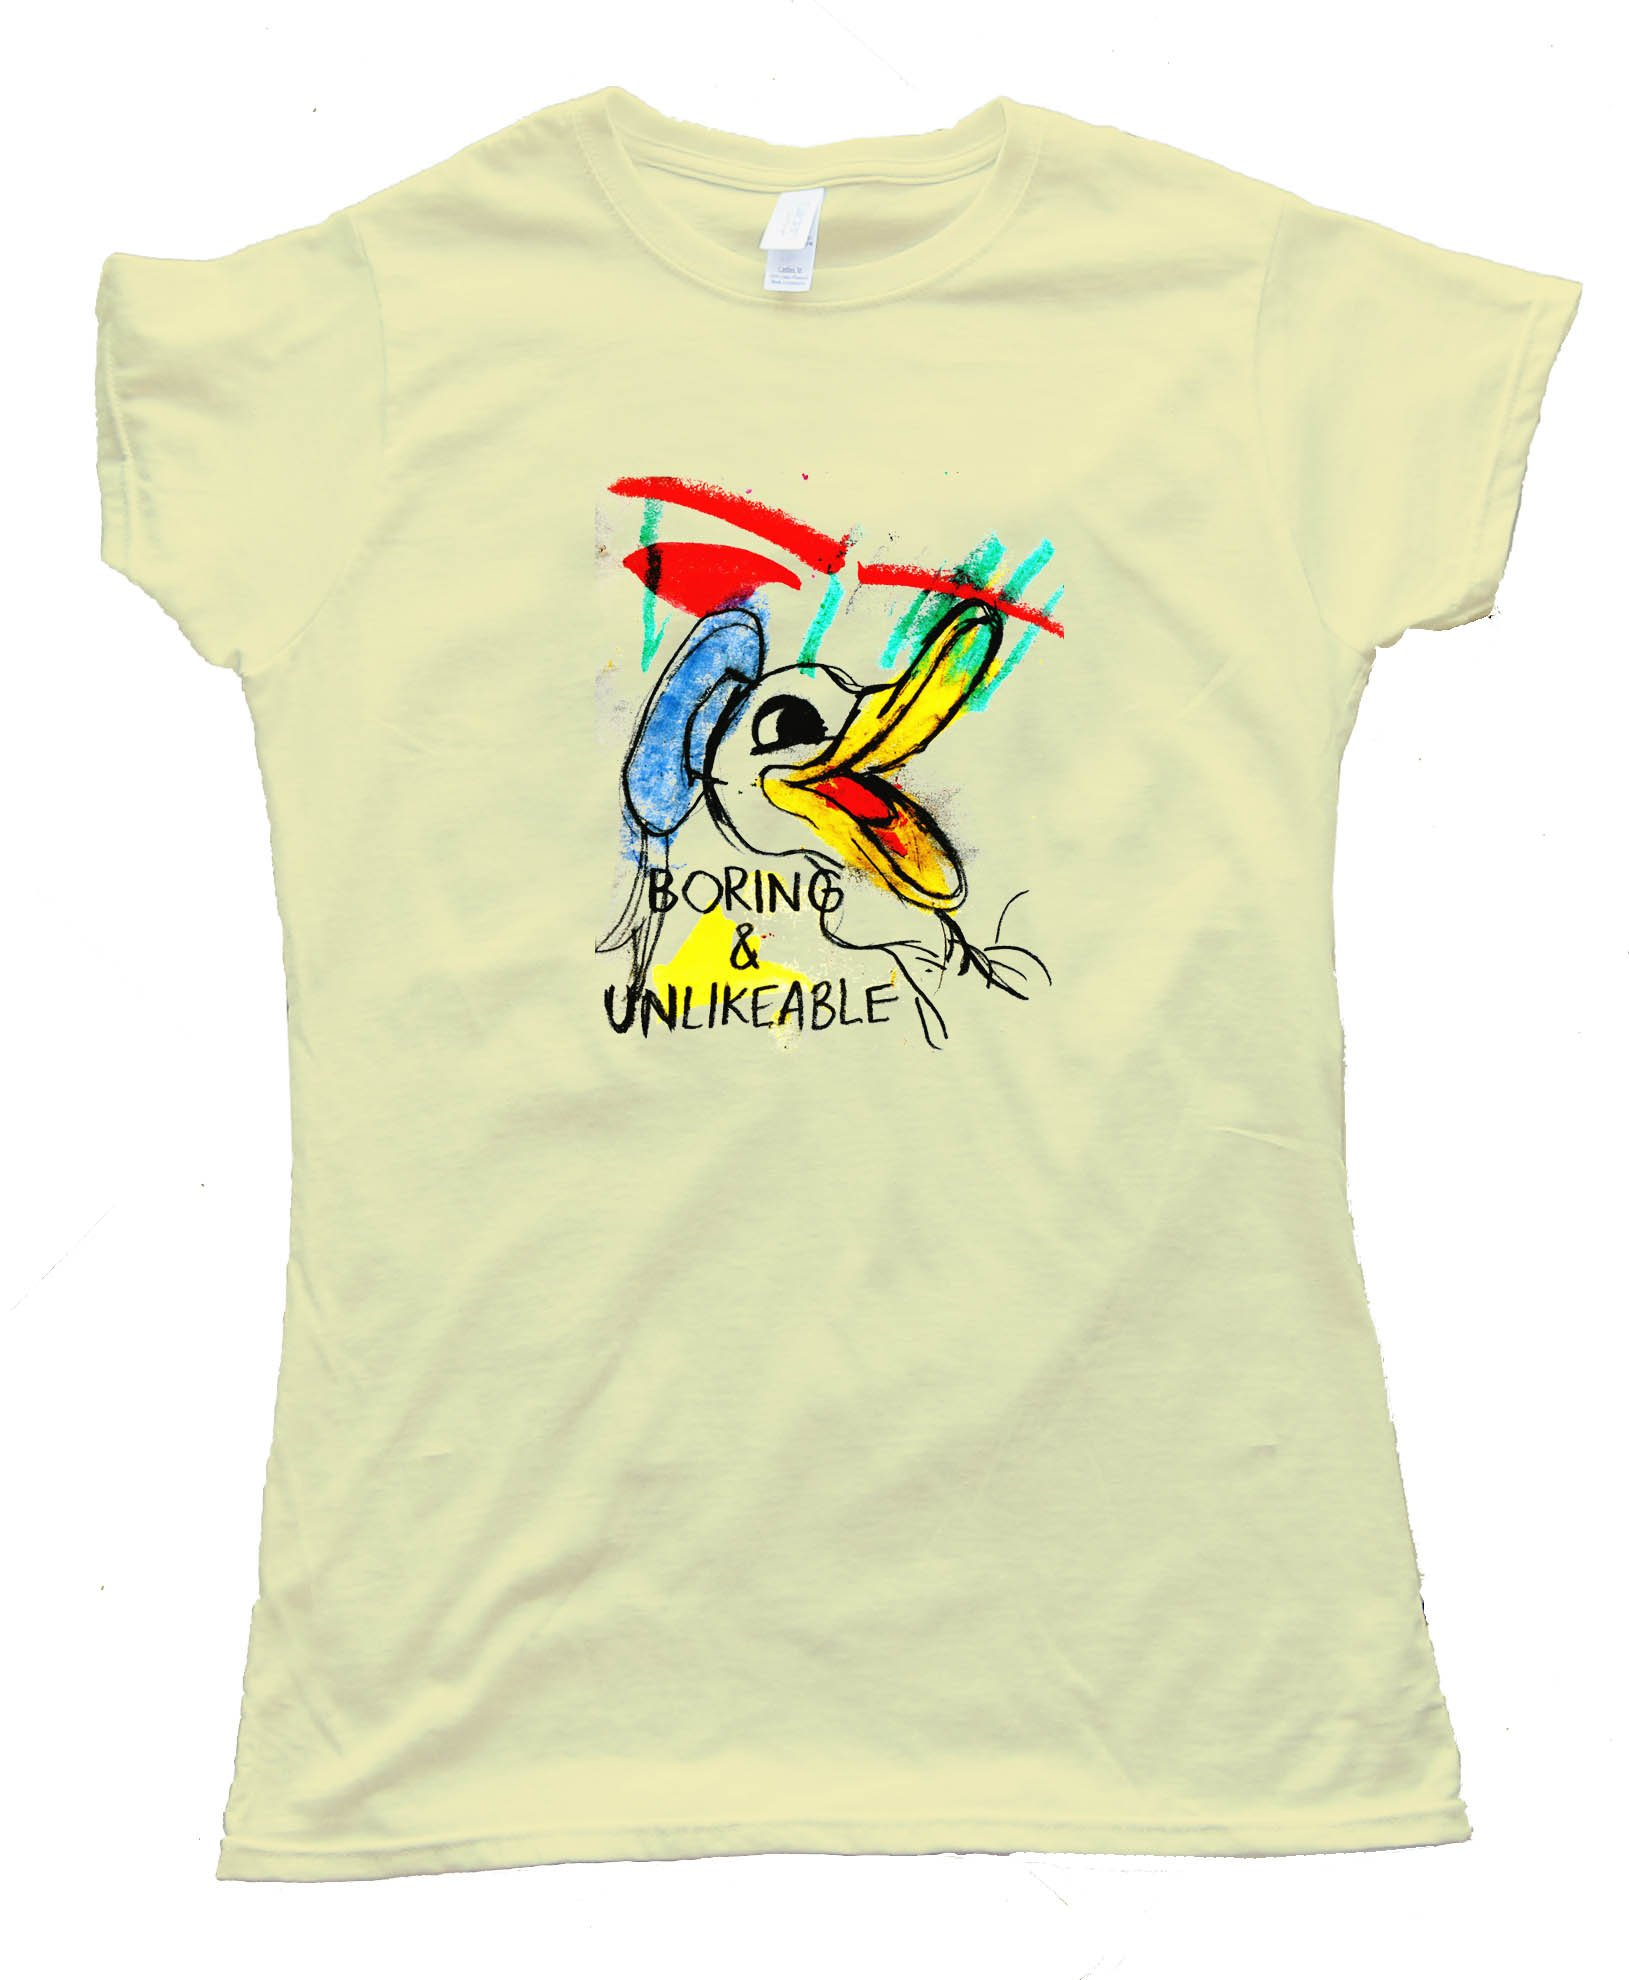 Womens Boring And Unlikable Daffy Duckalike - Tee Shirt